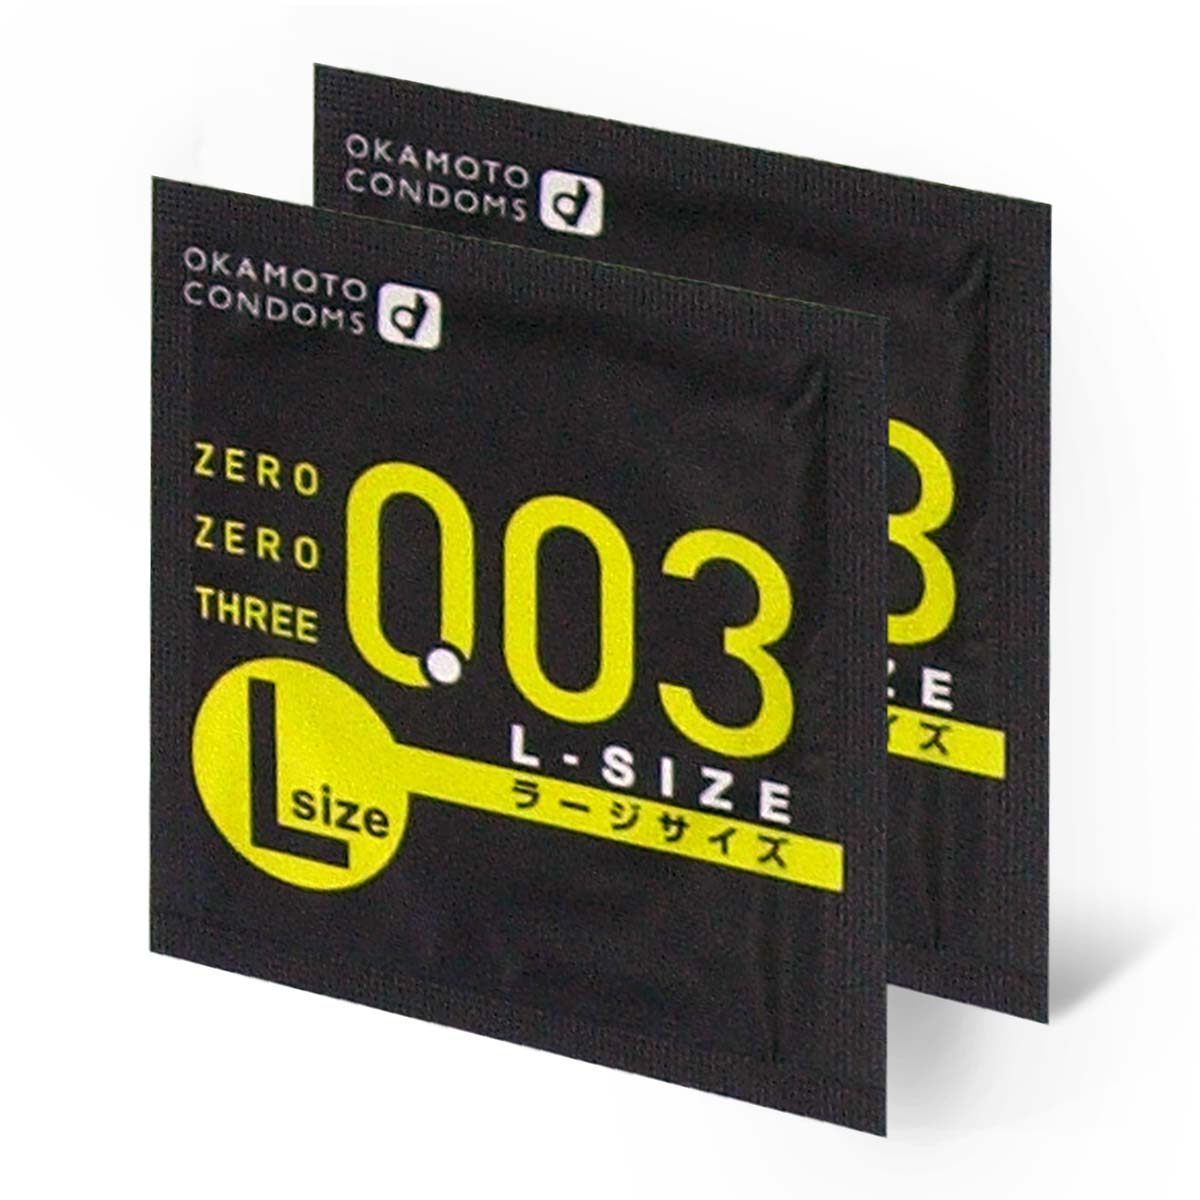 Zero Zero Three 0.03 L-size (Japan Edition) 58mm 2 pieces Latex Condom